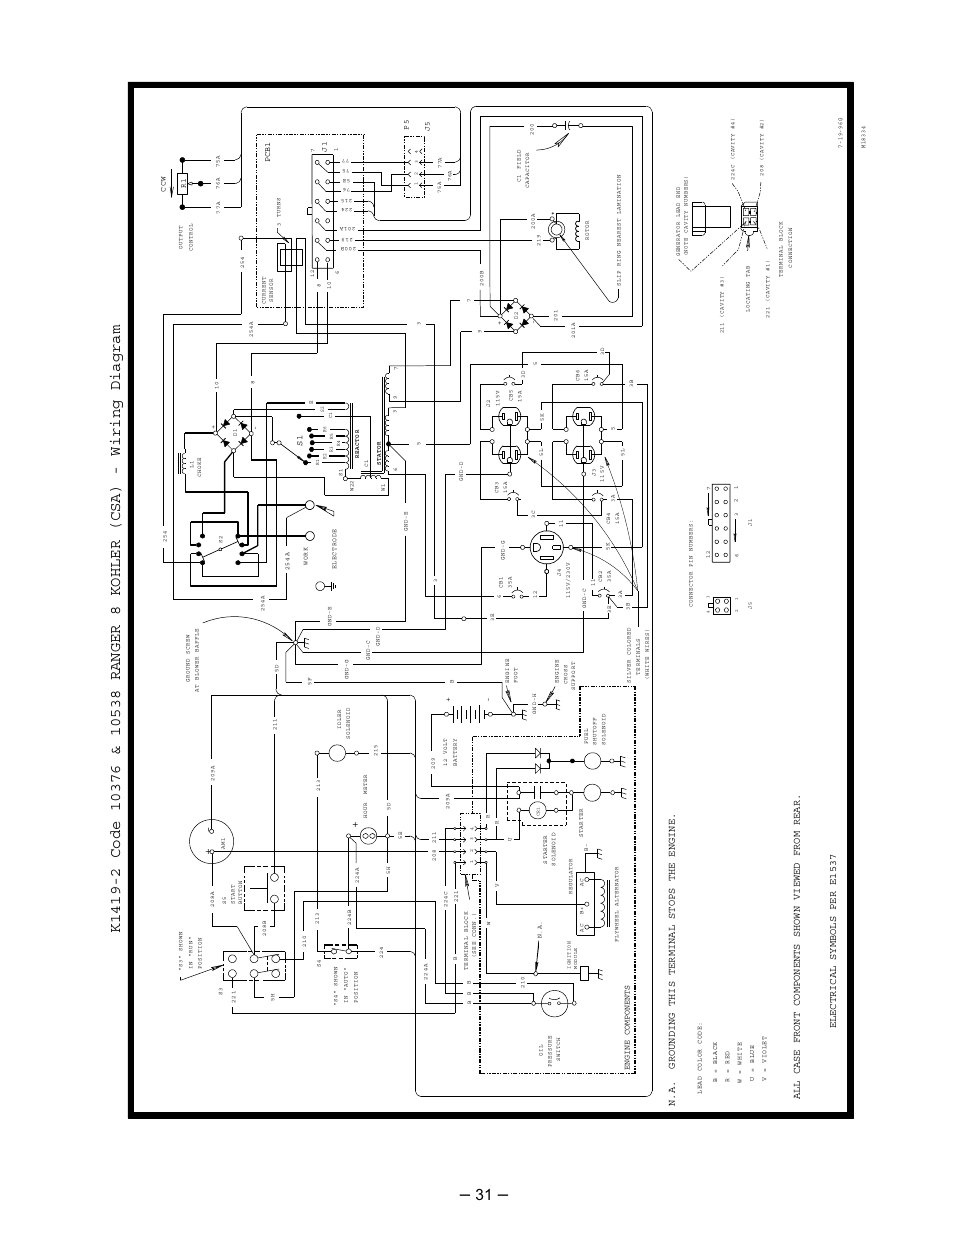 2011 lincoln mkx wiring diagram lincoln electric wiring diagram lincoln wiring diagrams description lincoln ranger 8 wiring diagram wiring a bathroom